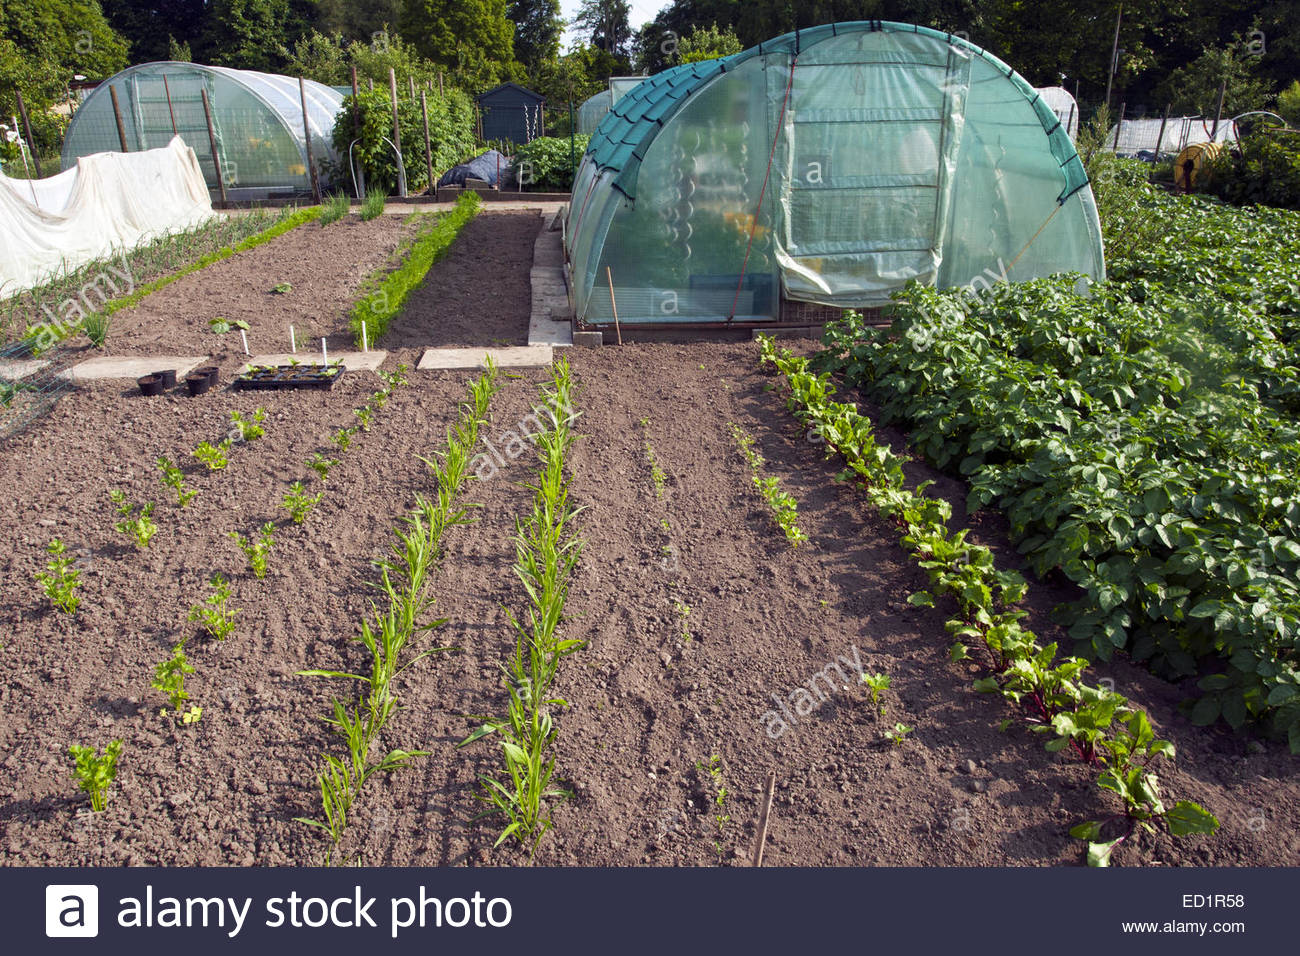 Kitchen Garden Vegetables Plastic Greenhouse And Herbs And Vegetables Growing In Kitchen